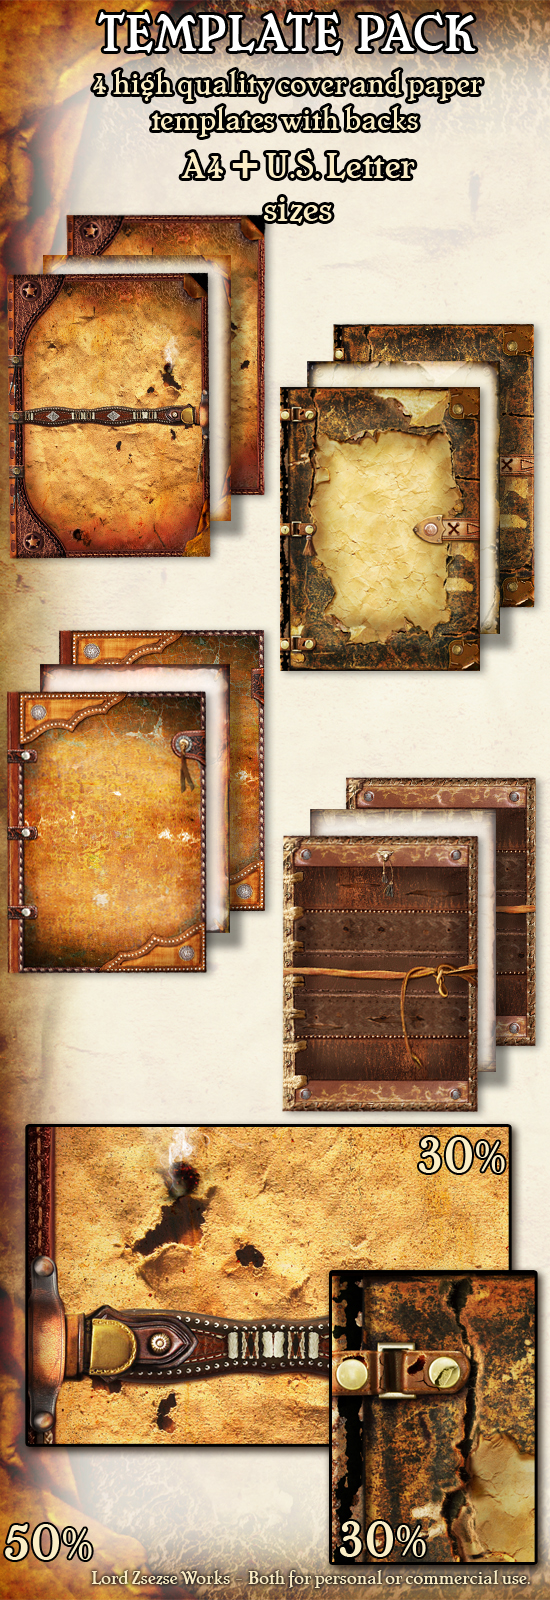 Template pack wood